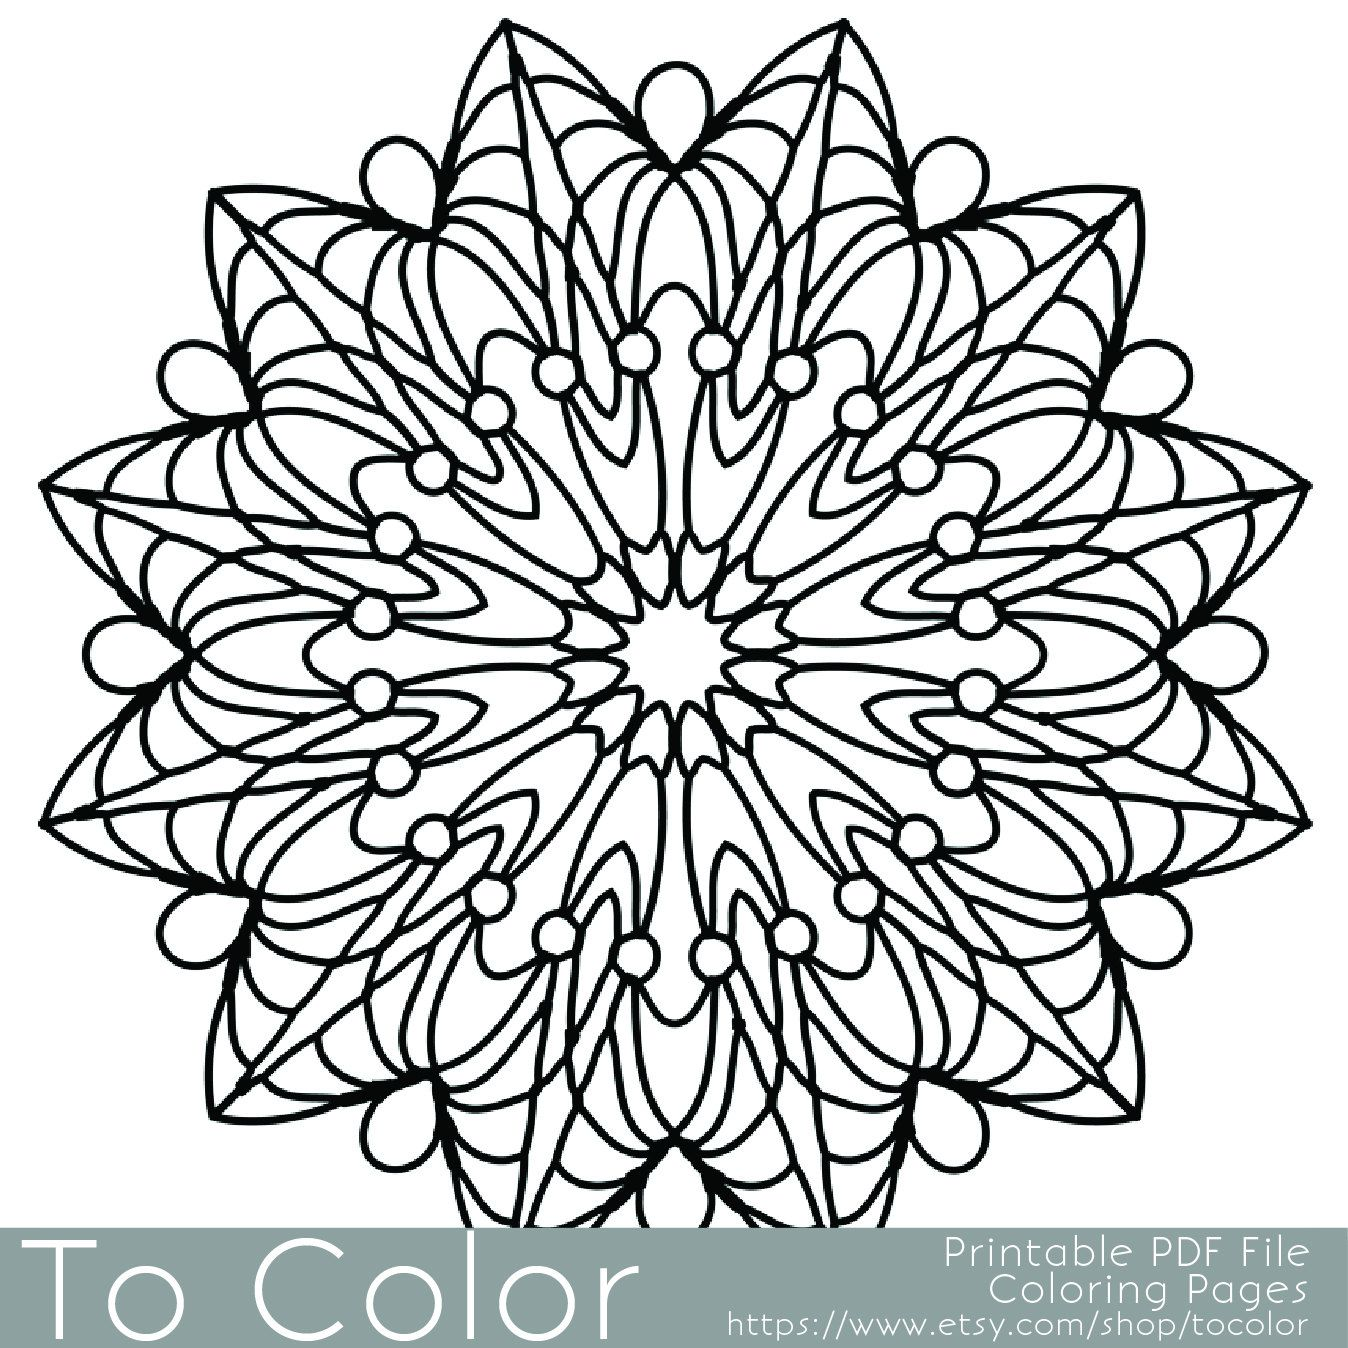 Simple printable coloring pages for adults gel pens Easy coloring books for adults